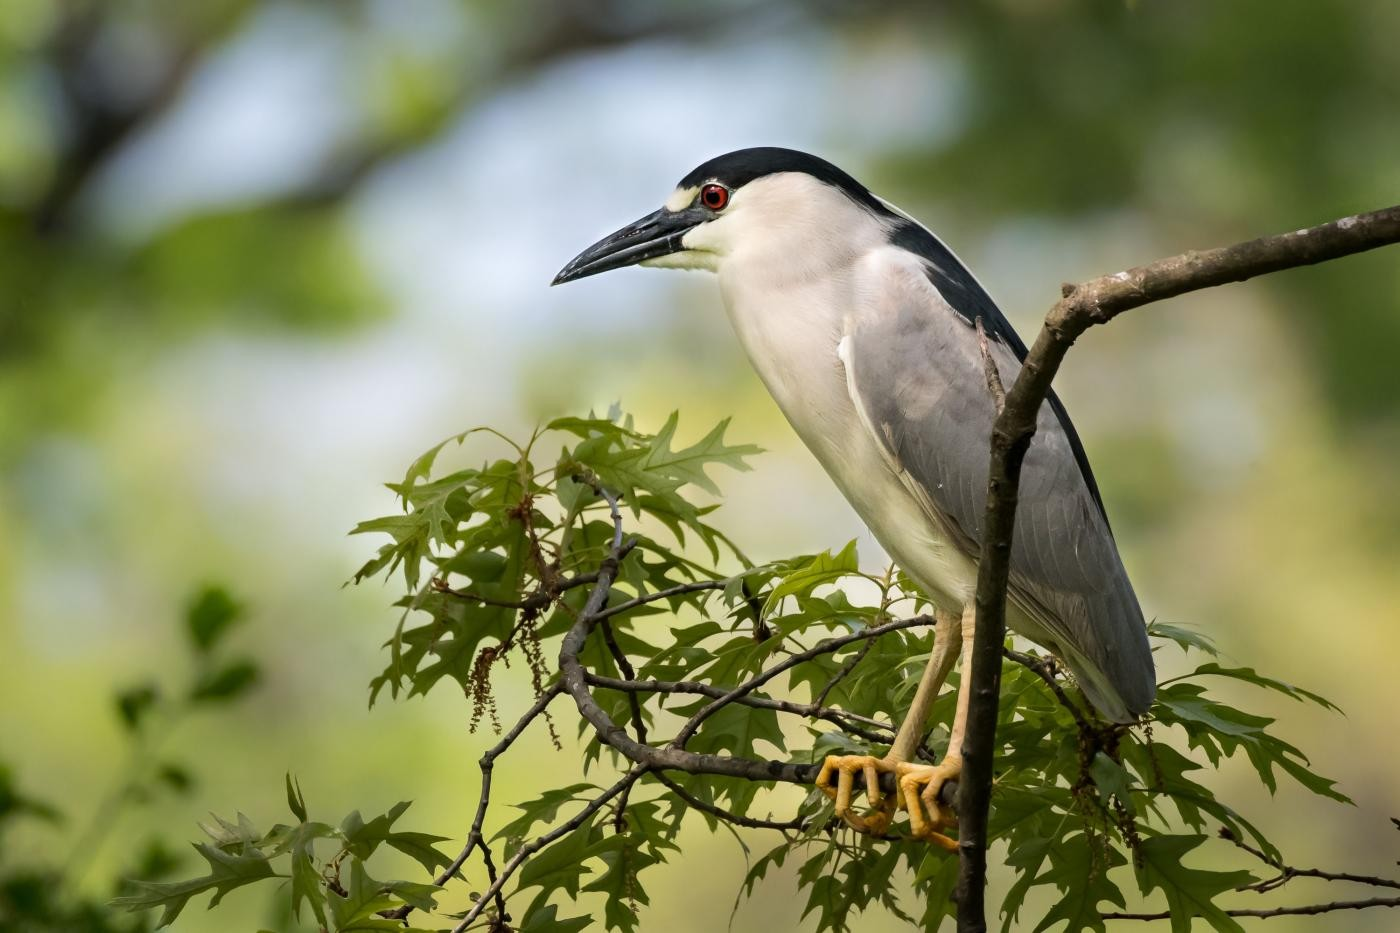 a black-crowned night heron perched on a branch with green leaves